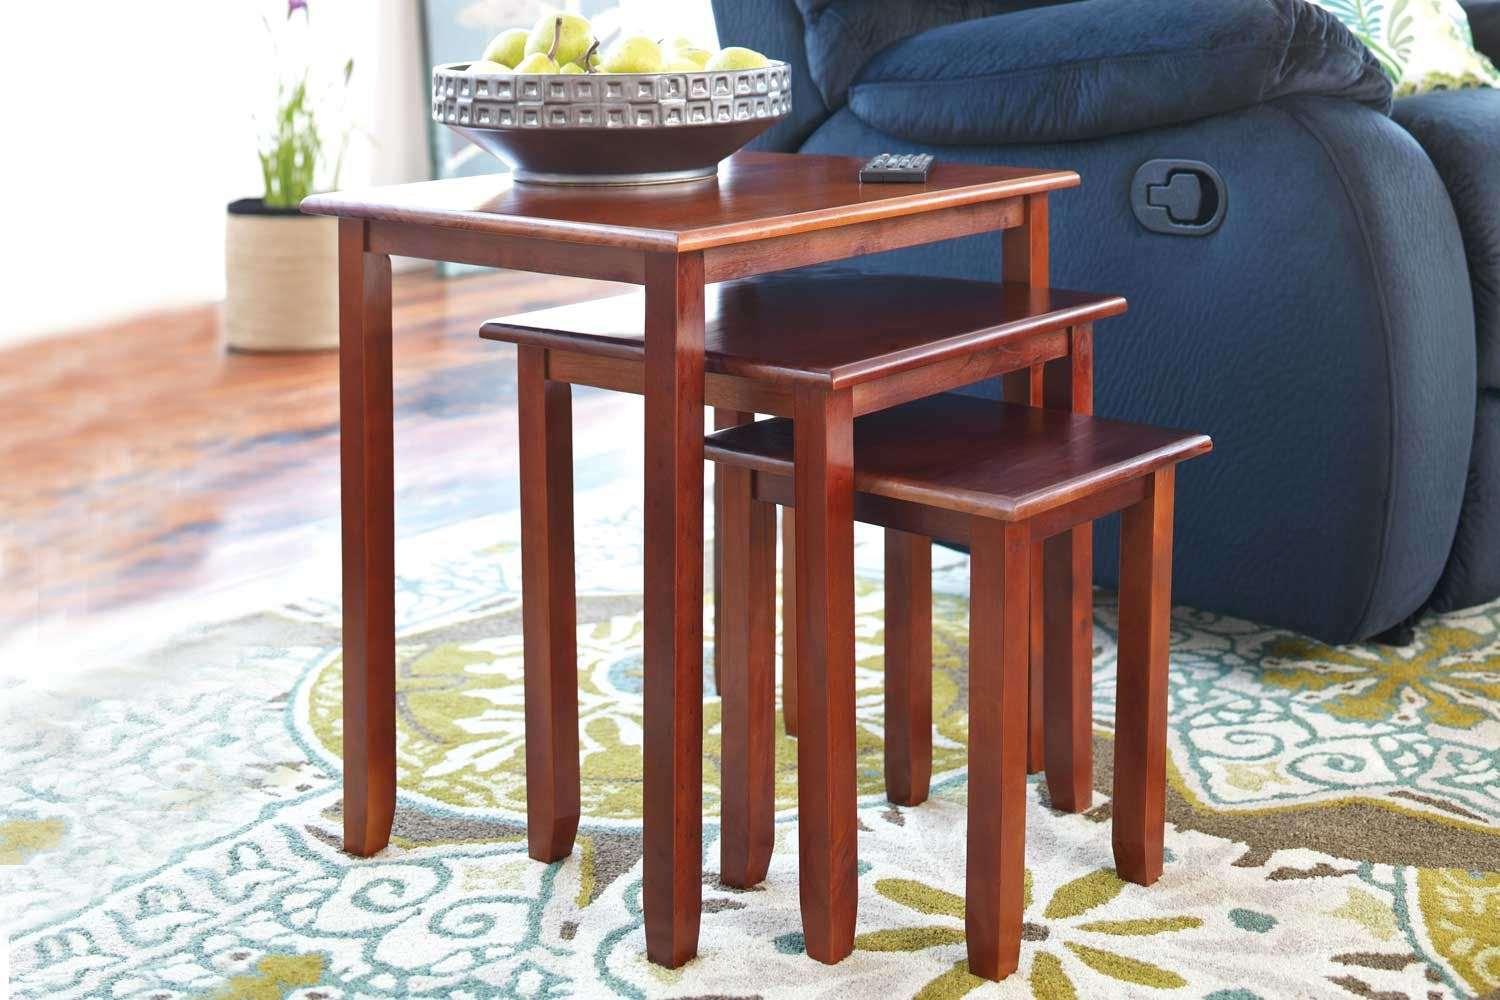 Robins nest of 3 tables by nero furniture harvey norman new zealand oak robins nest of 3 tables watchthetrailerfo